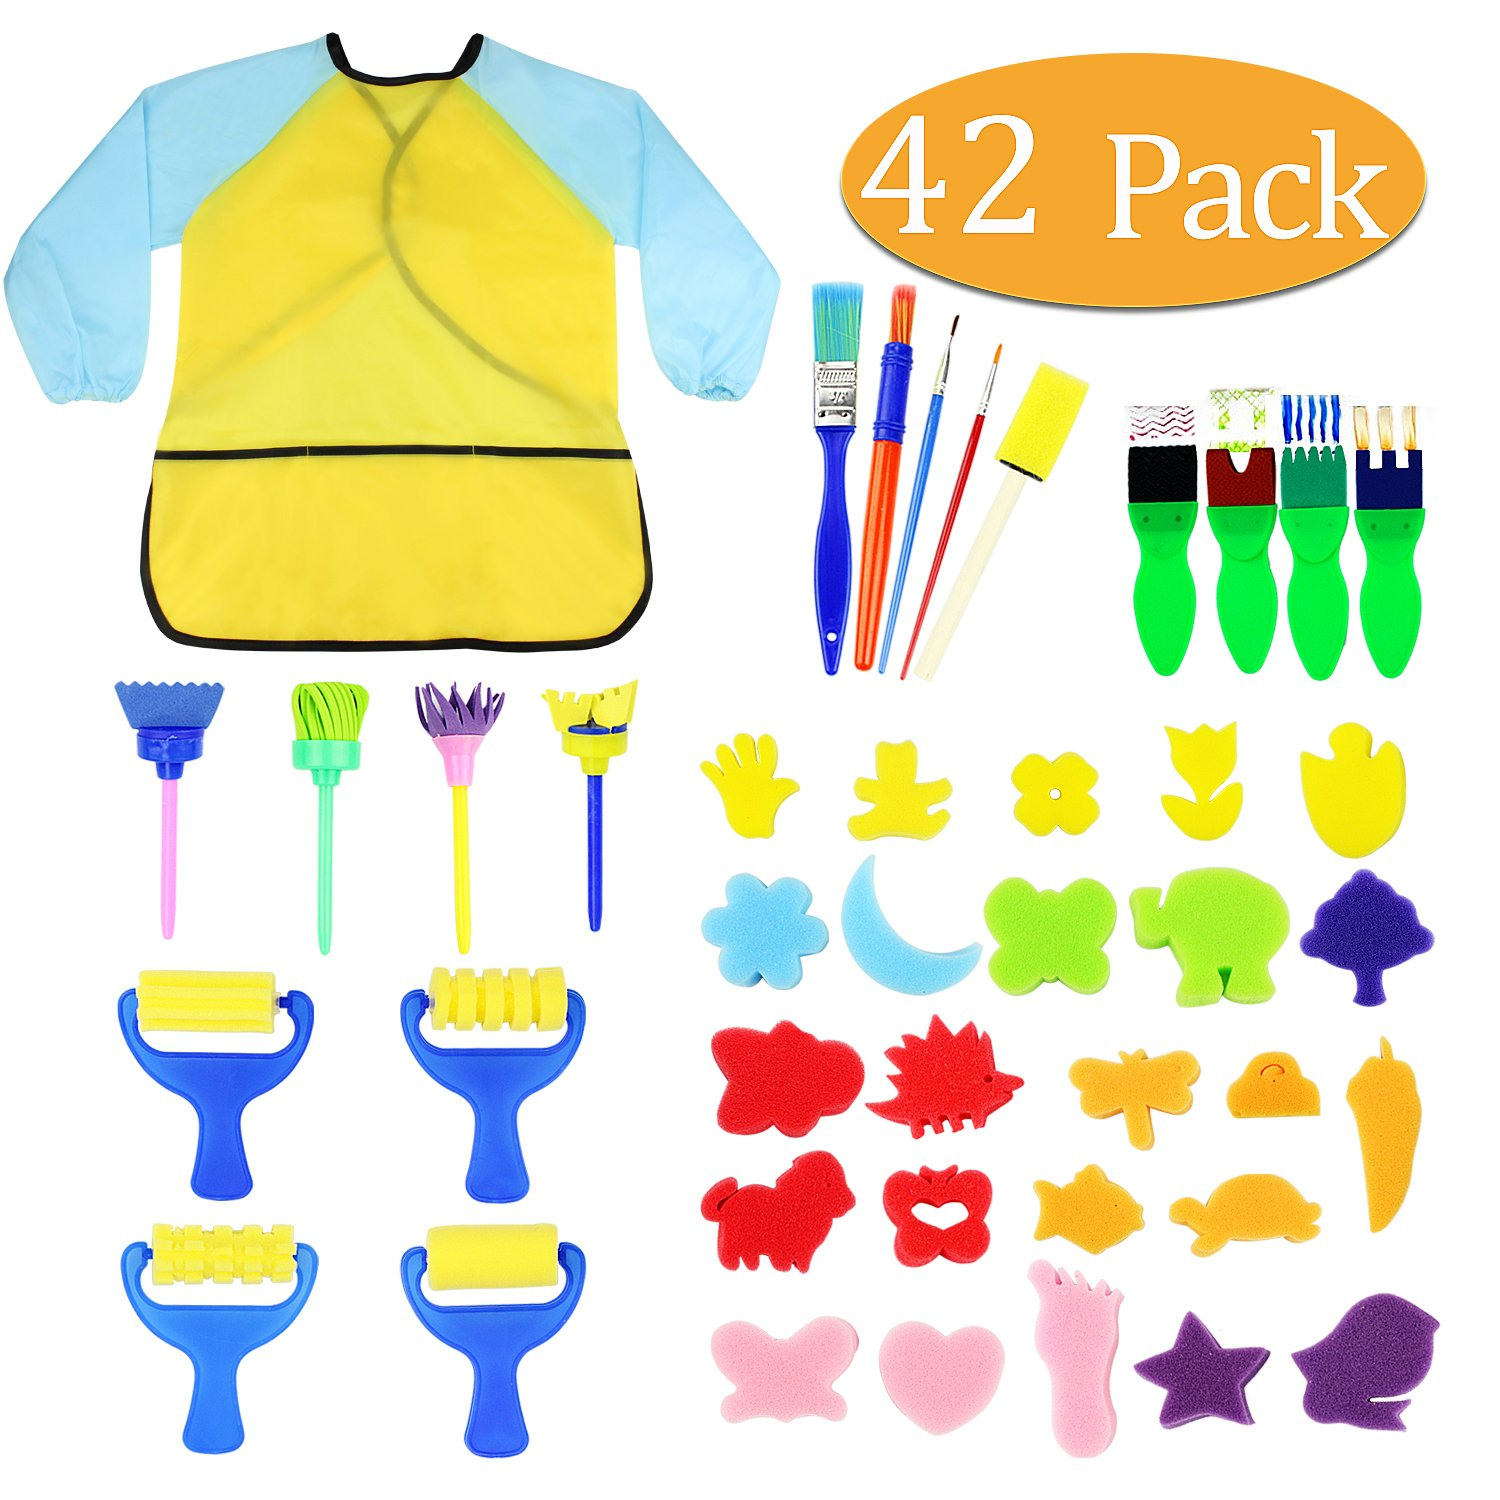 Kids Early Learning Sponge Painting Brushes Kit, 42 Pieces Sponge Drawing Shapes Paint Craft Brushes for Toddlers Assorted Pattern, Including Children Waterproof Art Painting Smock Apron by vorey